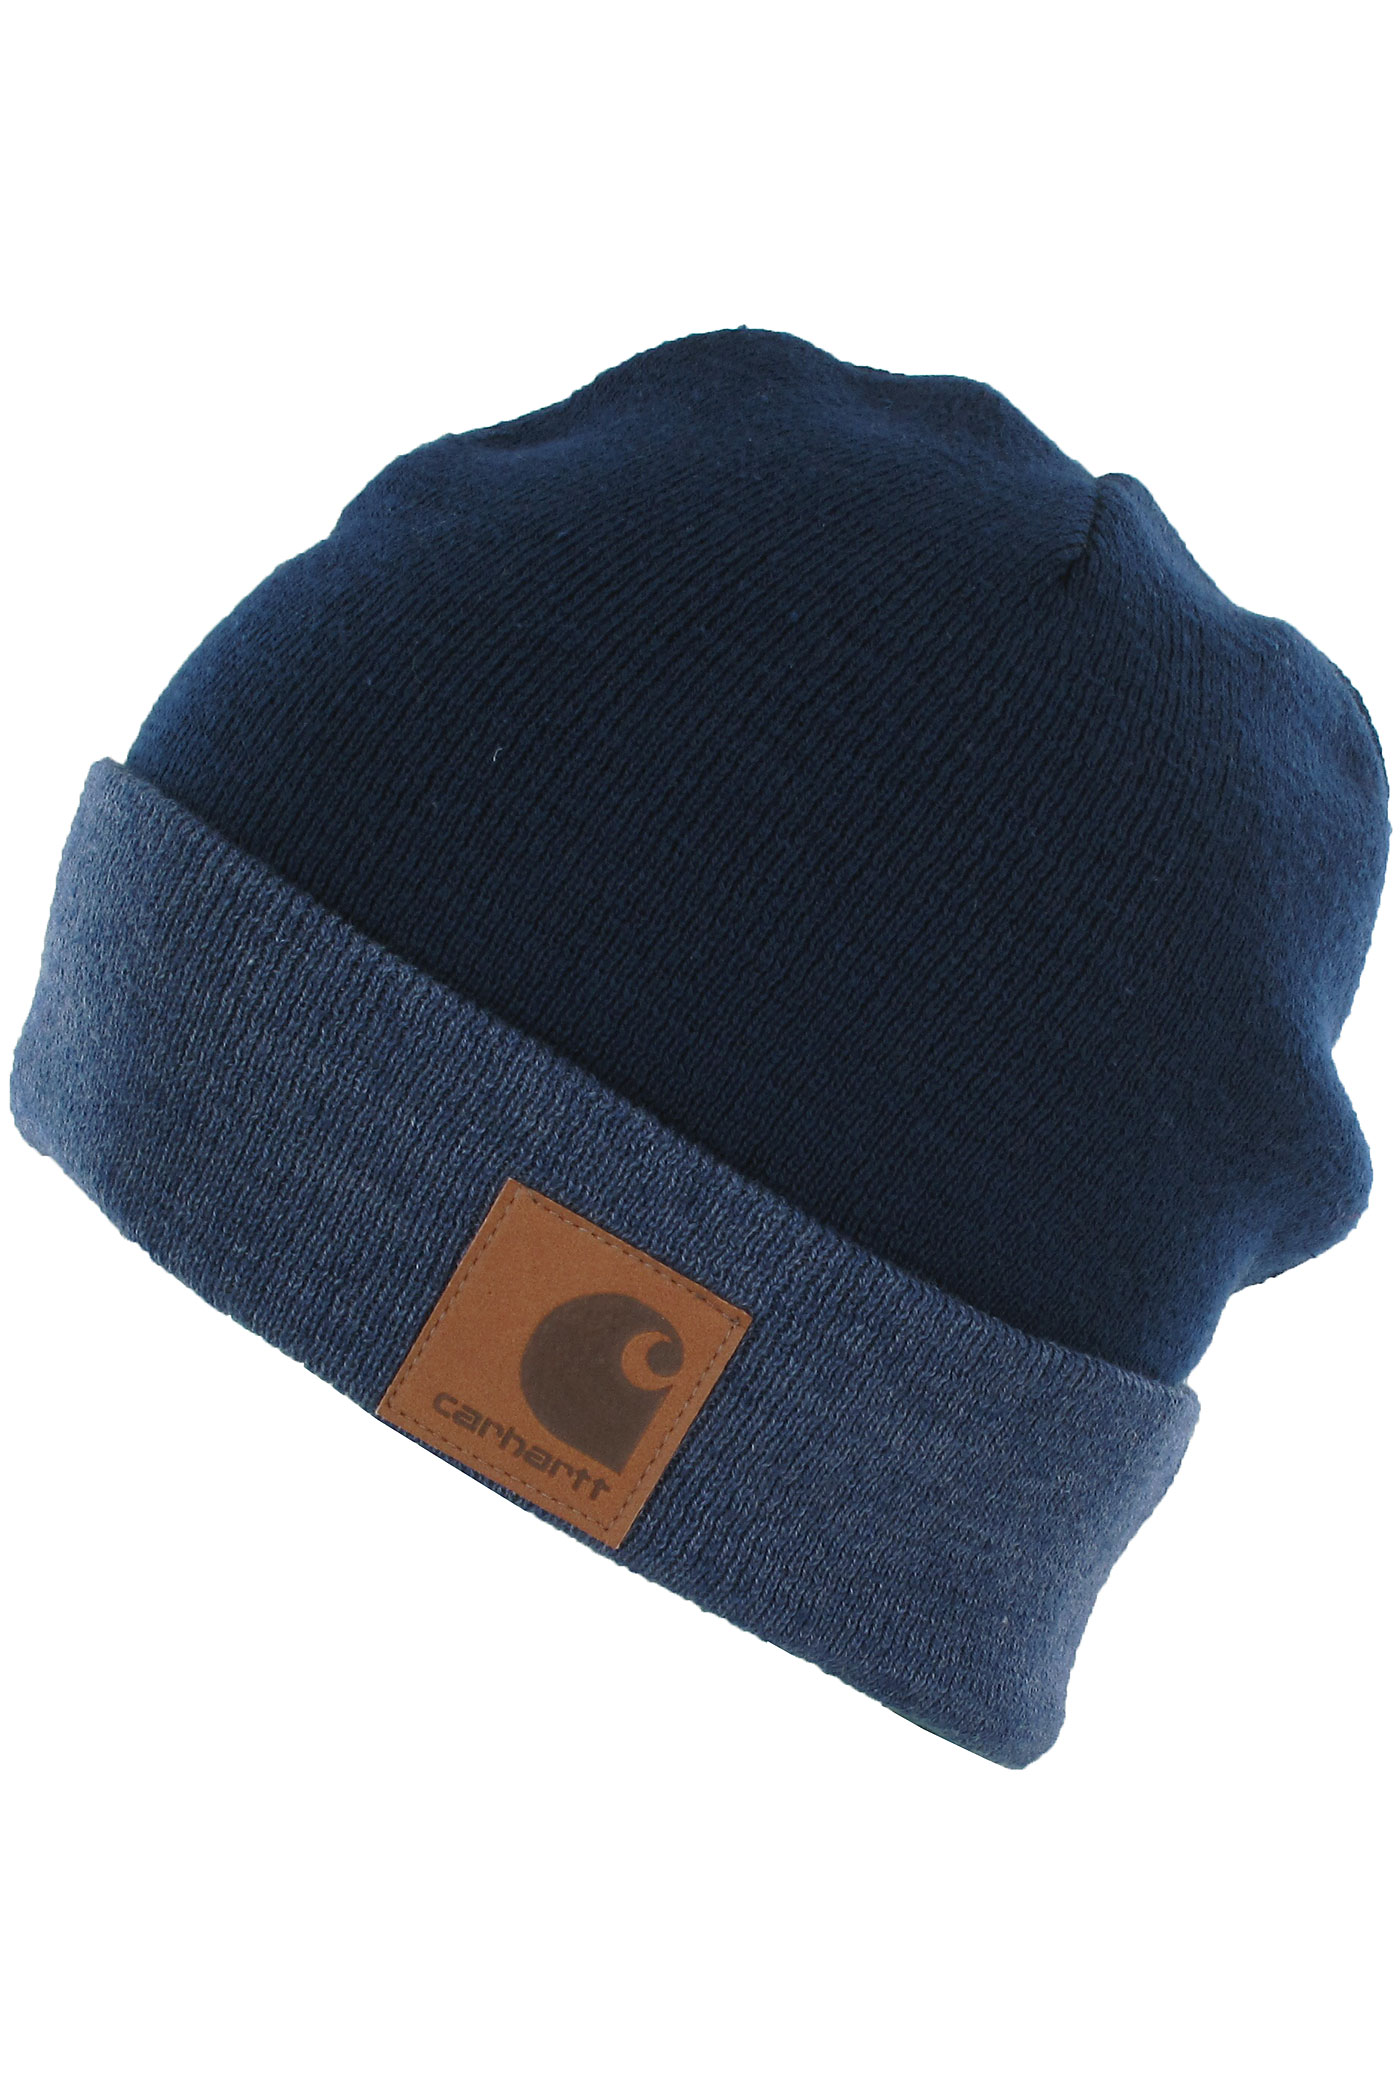 how to buy carries beanies